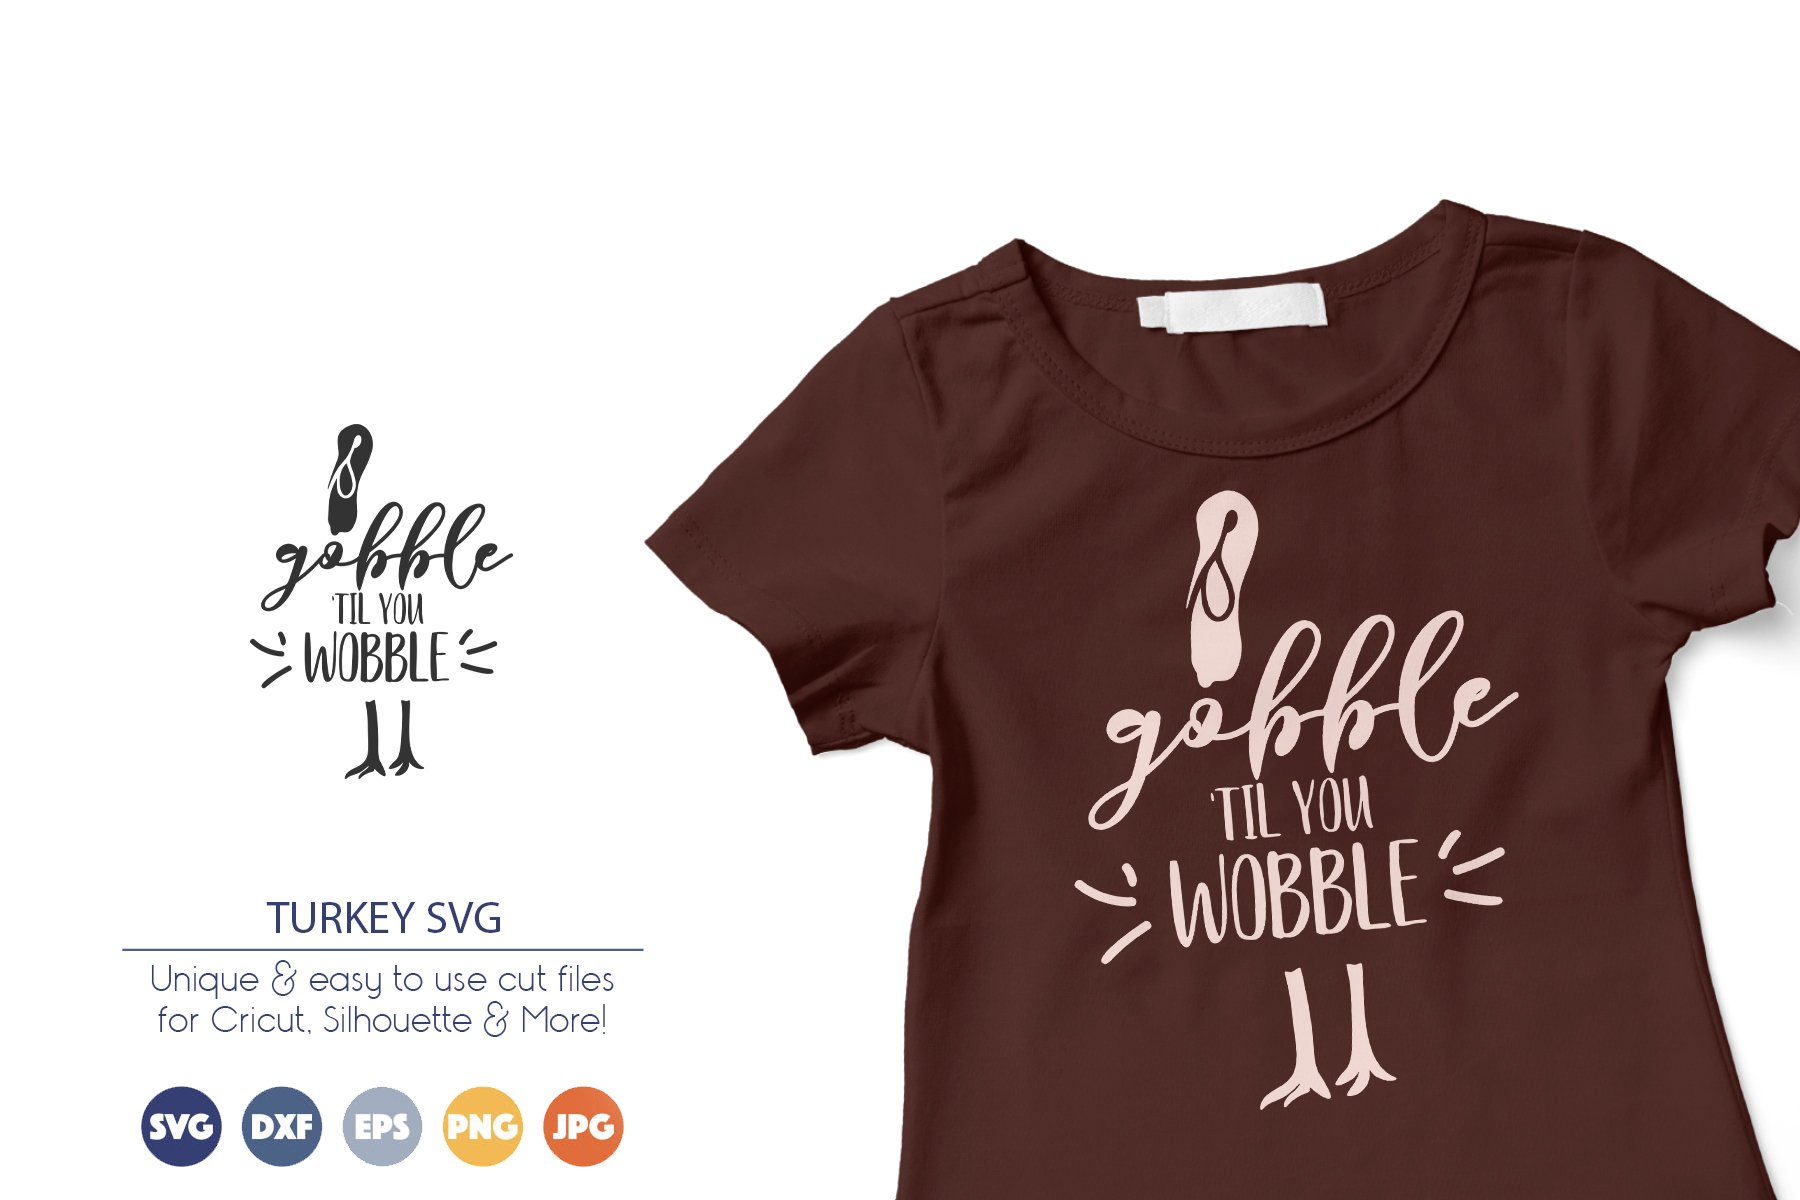 Gobble 'til You Wobble SVG | Thanksgiving SVG Turkey example image 1